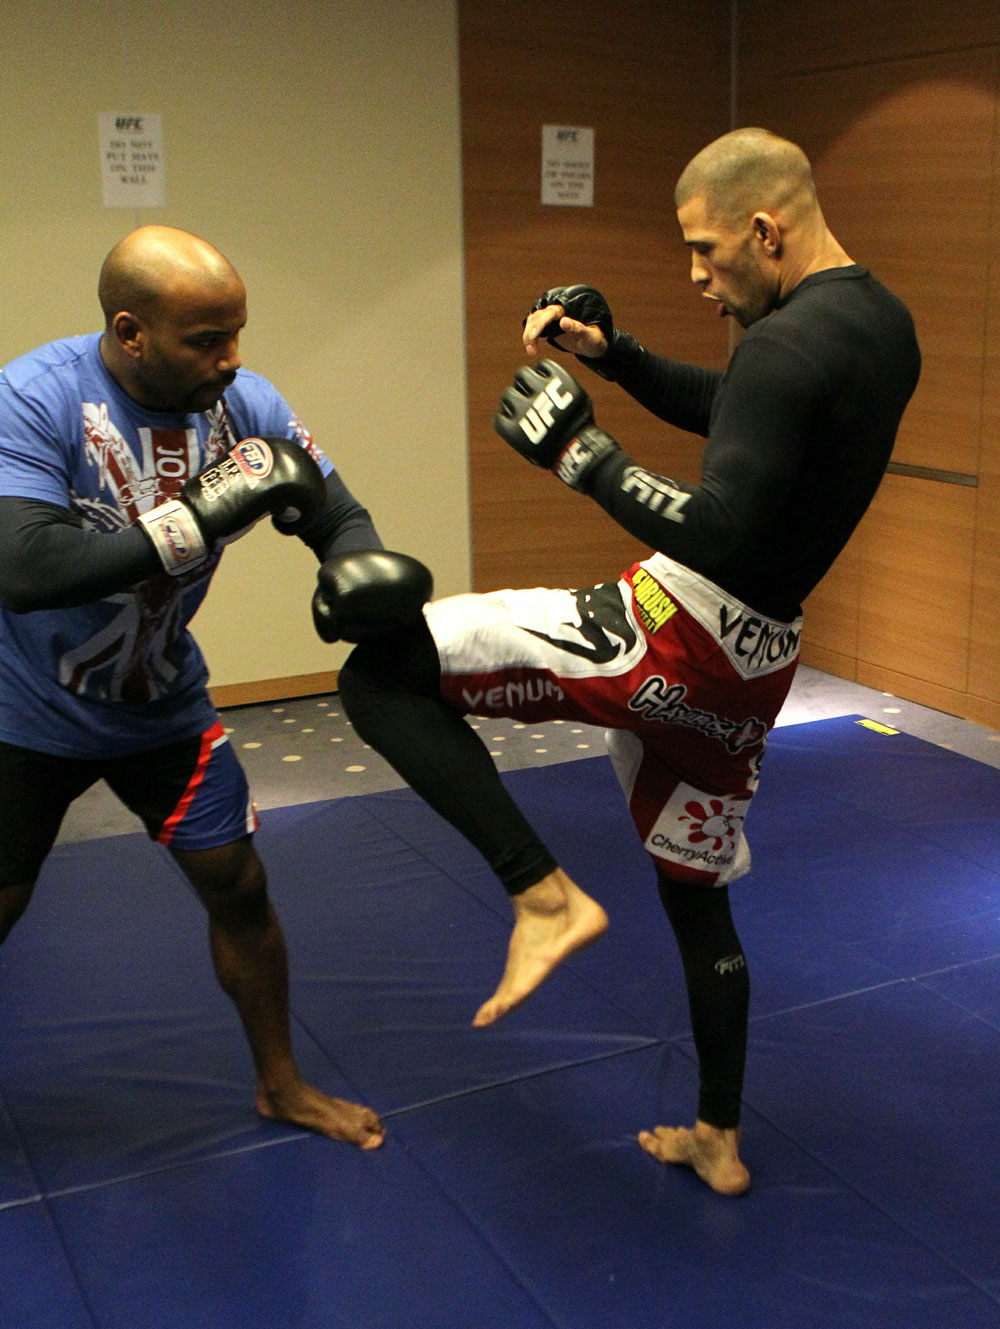 Andre Winner (R) works out with trainer Dean Amasinger at the UFC 122 open workouts at the Hilton Hotel on November 10,  2010 in Dusseldorf, Germany.  (Photo by Josh Hedges/Zuffa LLC via Getty Images)